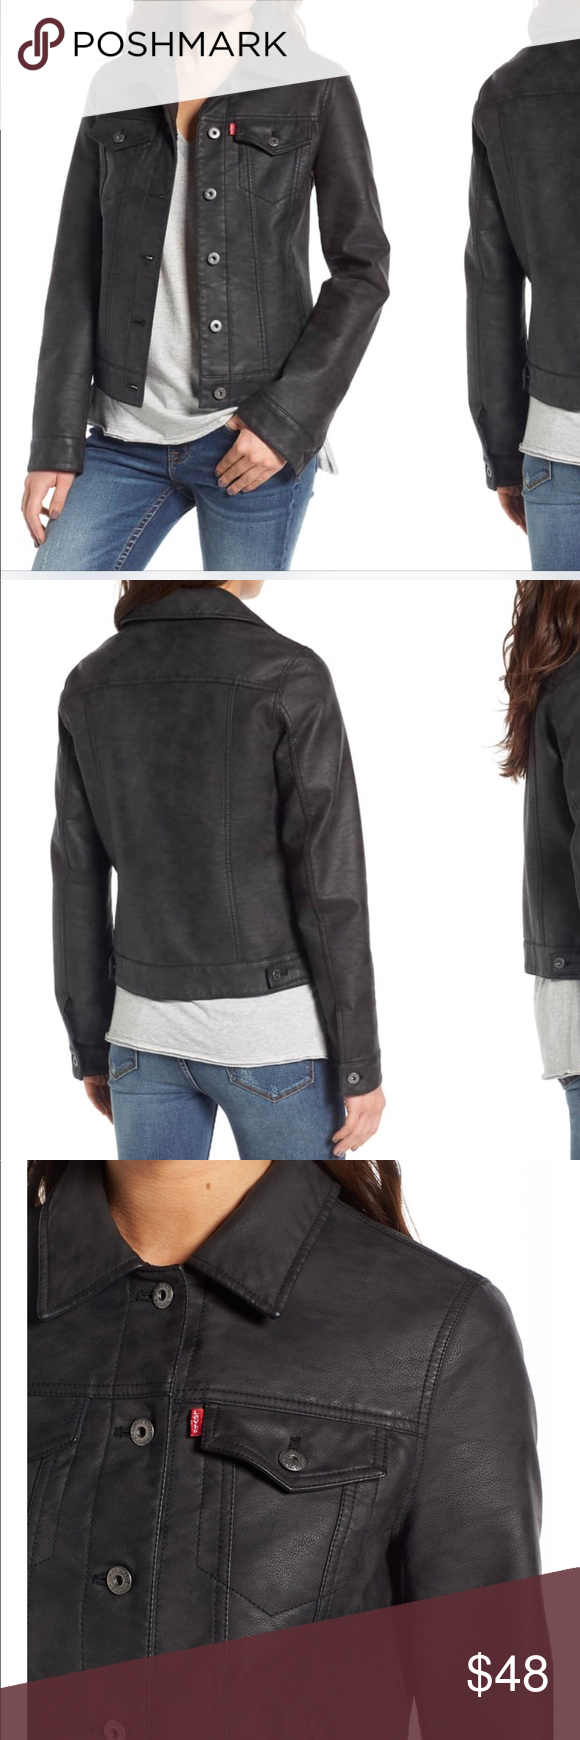 Levi's Women's Black Faux Leather Trucker Jacket Trucker